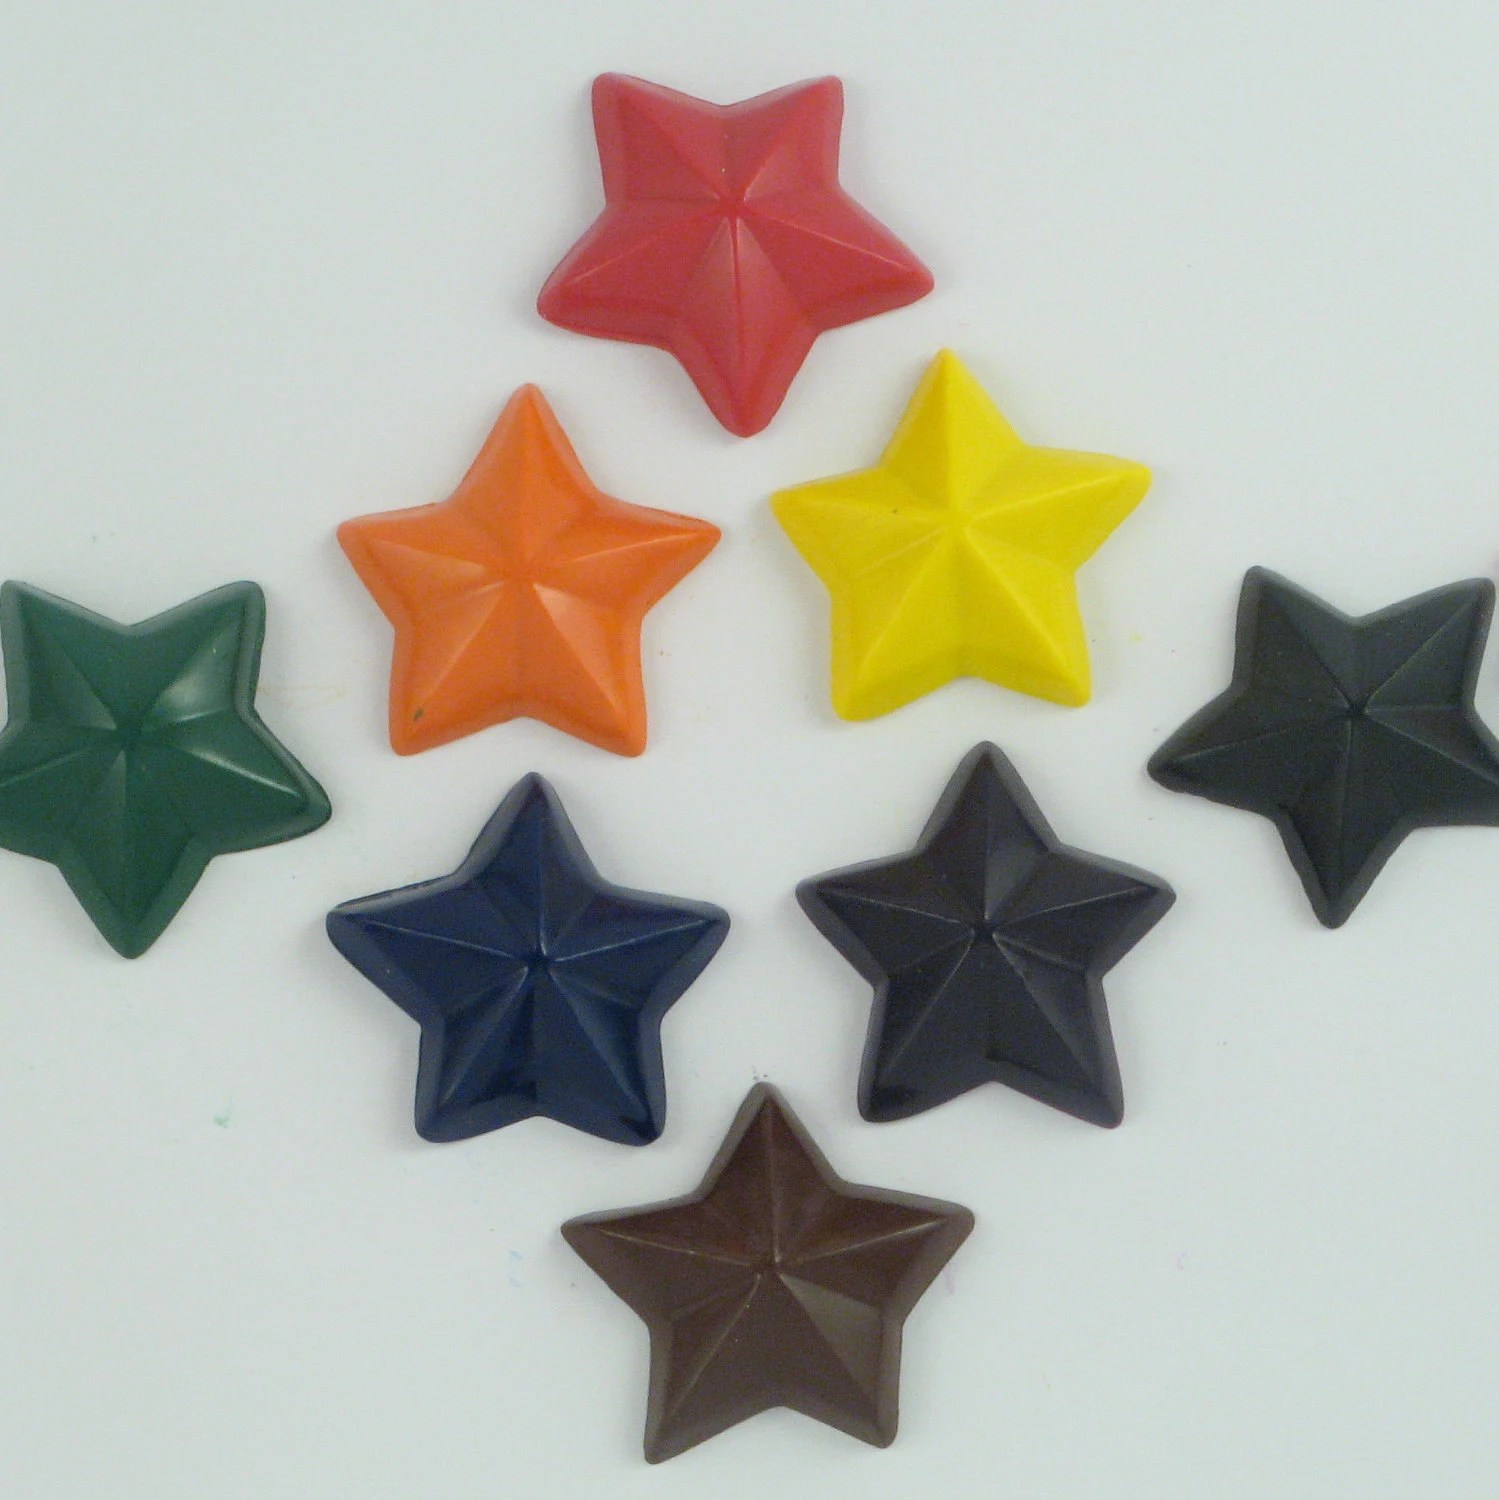 Star shaped crayons - twinkle twinkle